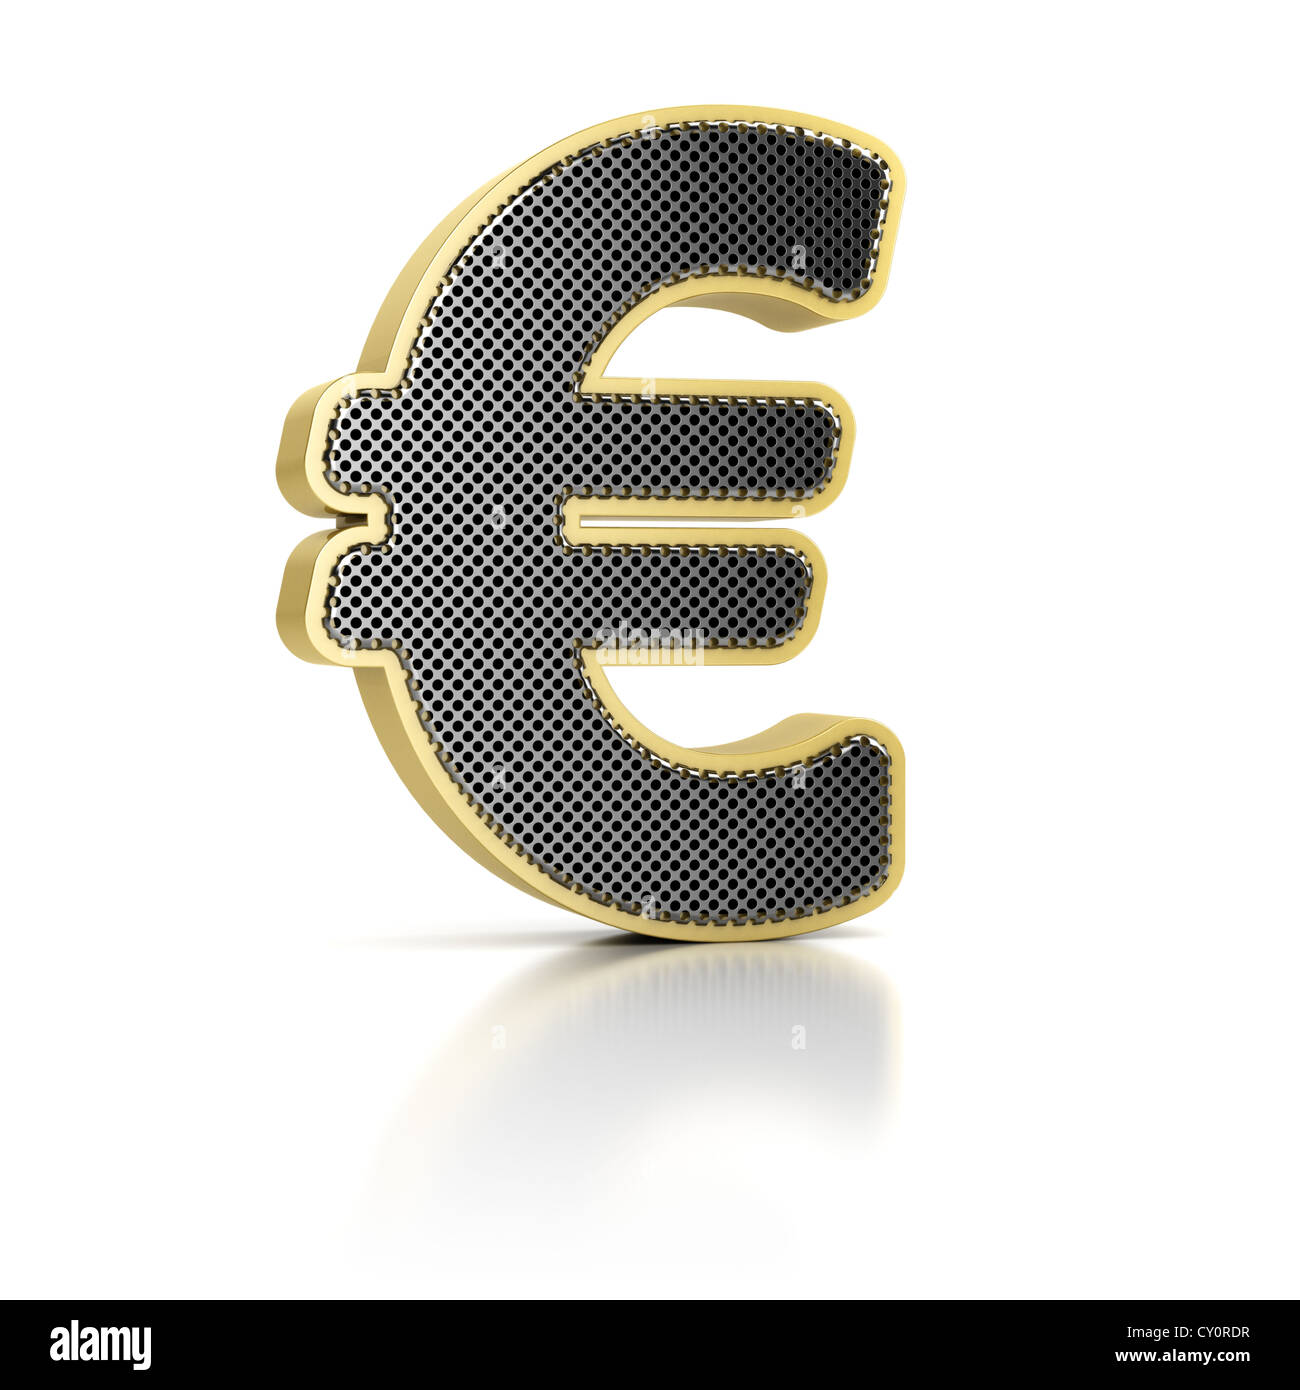 Euro Symbol Perforated Metal Object Stock Photos Euro Symbol